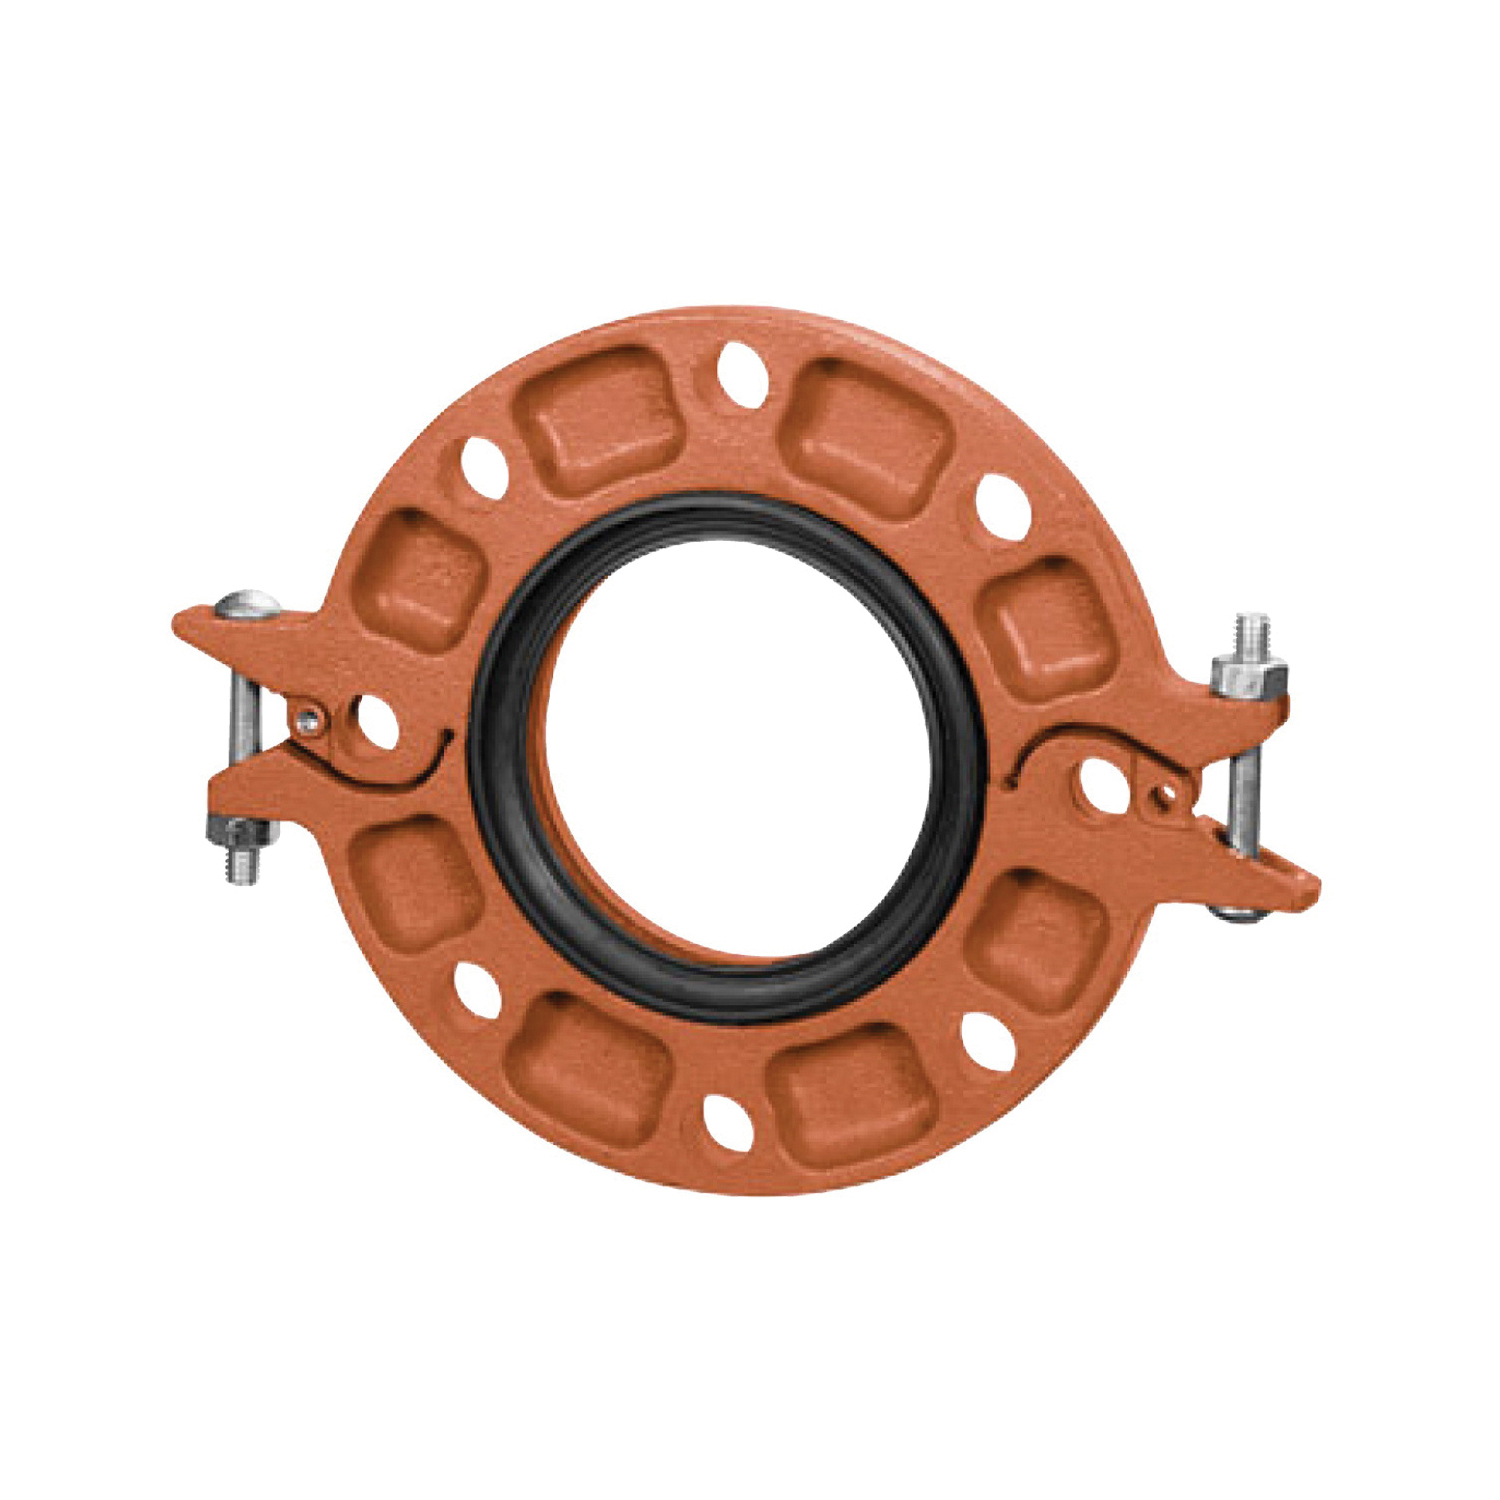 Gruvlok® 0390201002 FIG 7012 Pipe Flange With Grade E EPDM Gasket, 2 in Nominal, Ductile Iron, Grooved Connection, Domestic